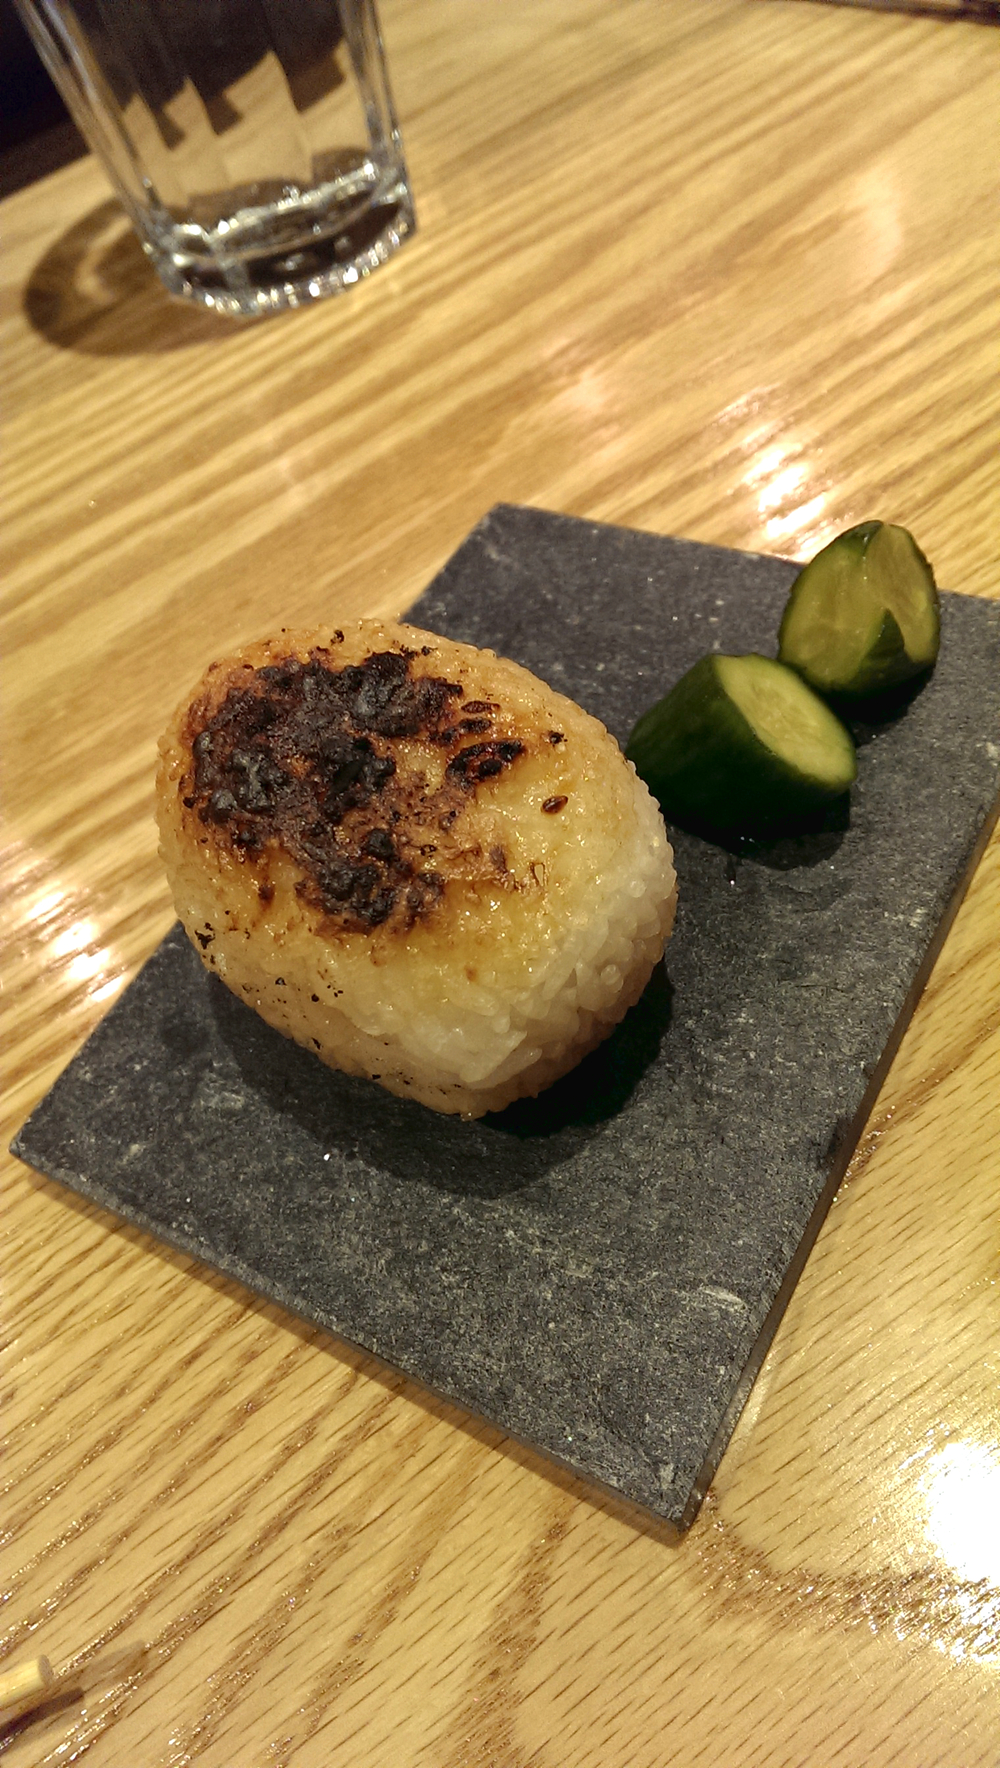 Yakionigiri (bincho charcoal grilled rice ball with a choice of plum or konbu kelp)